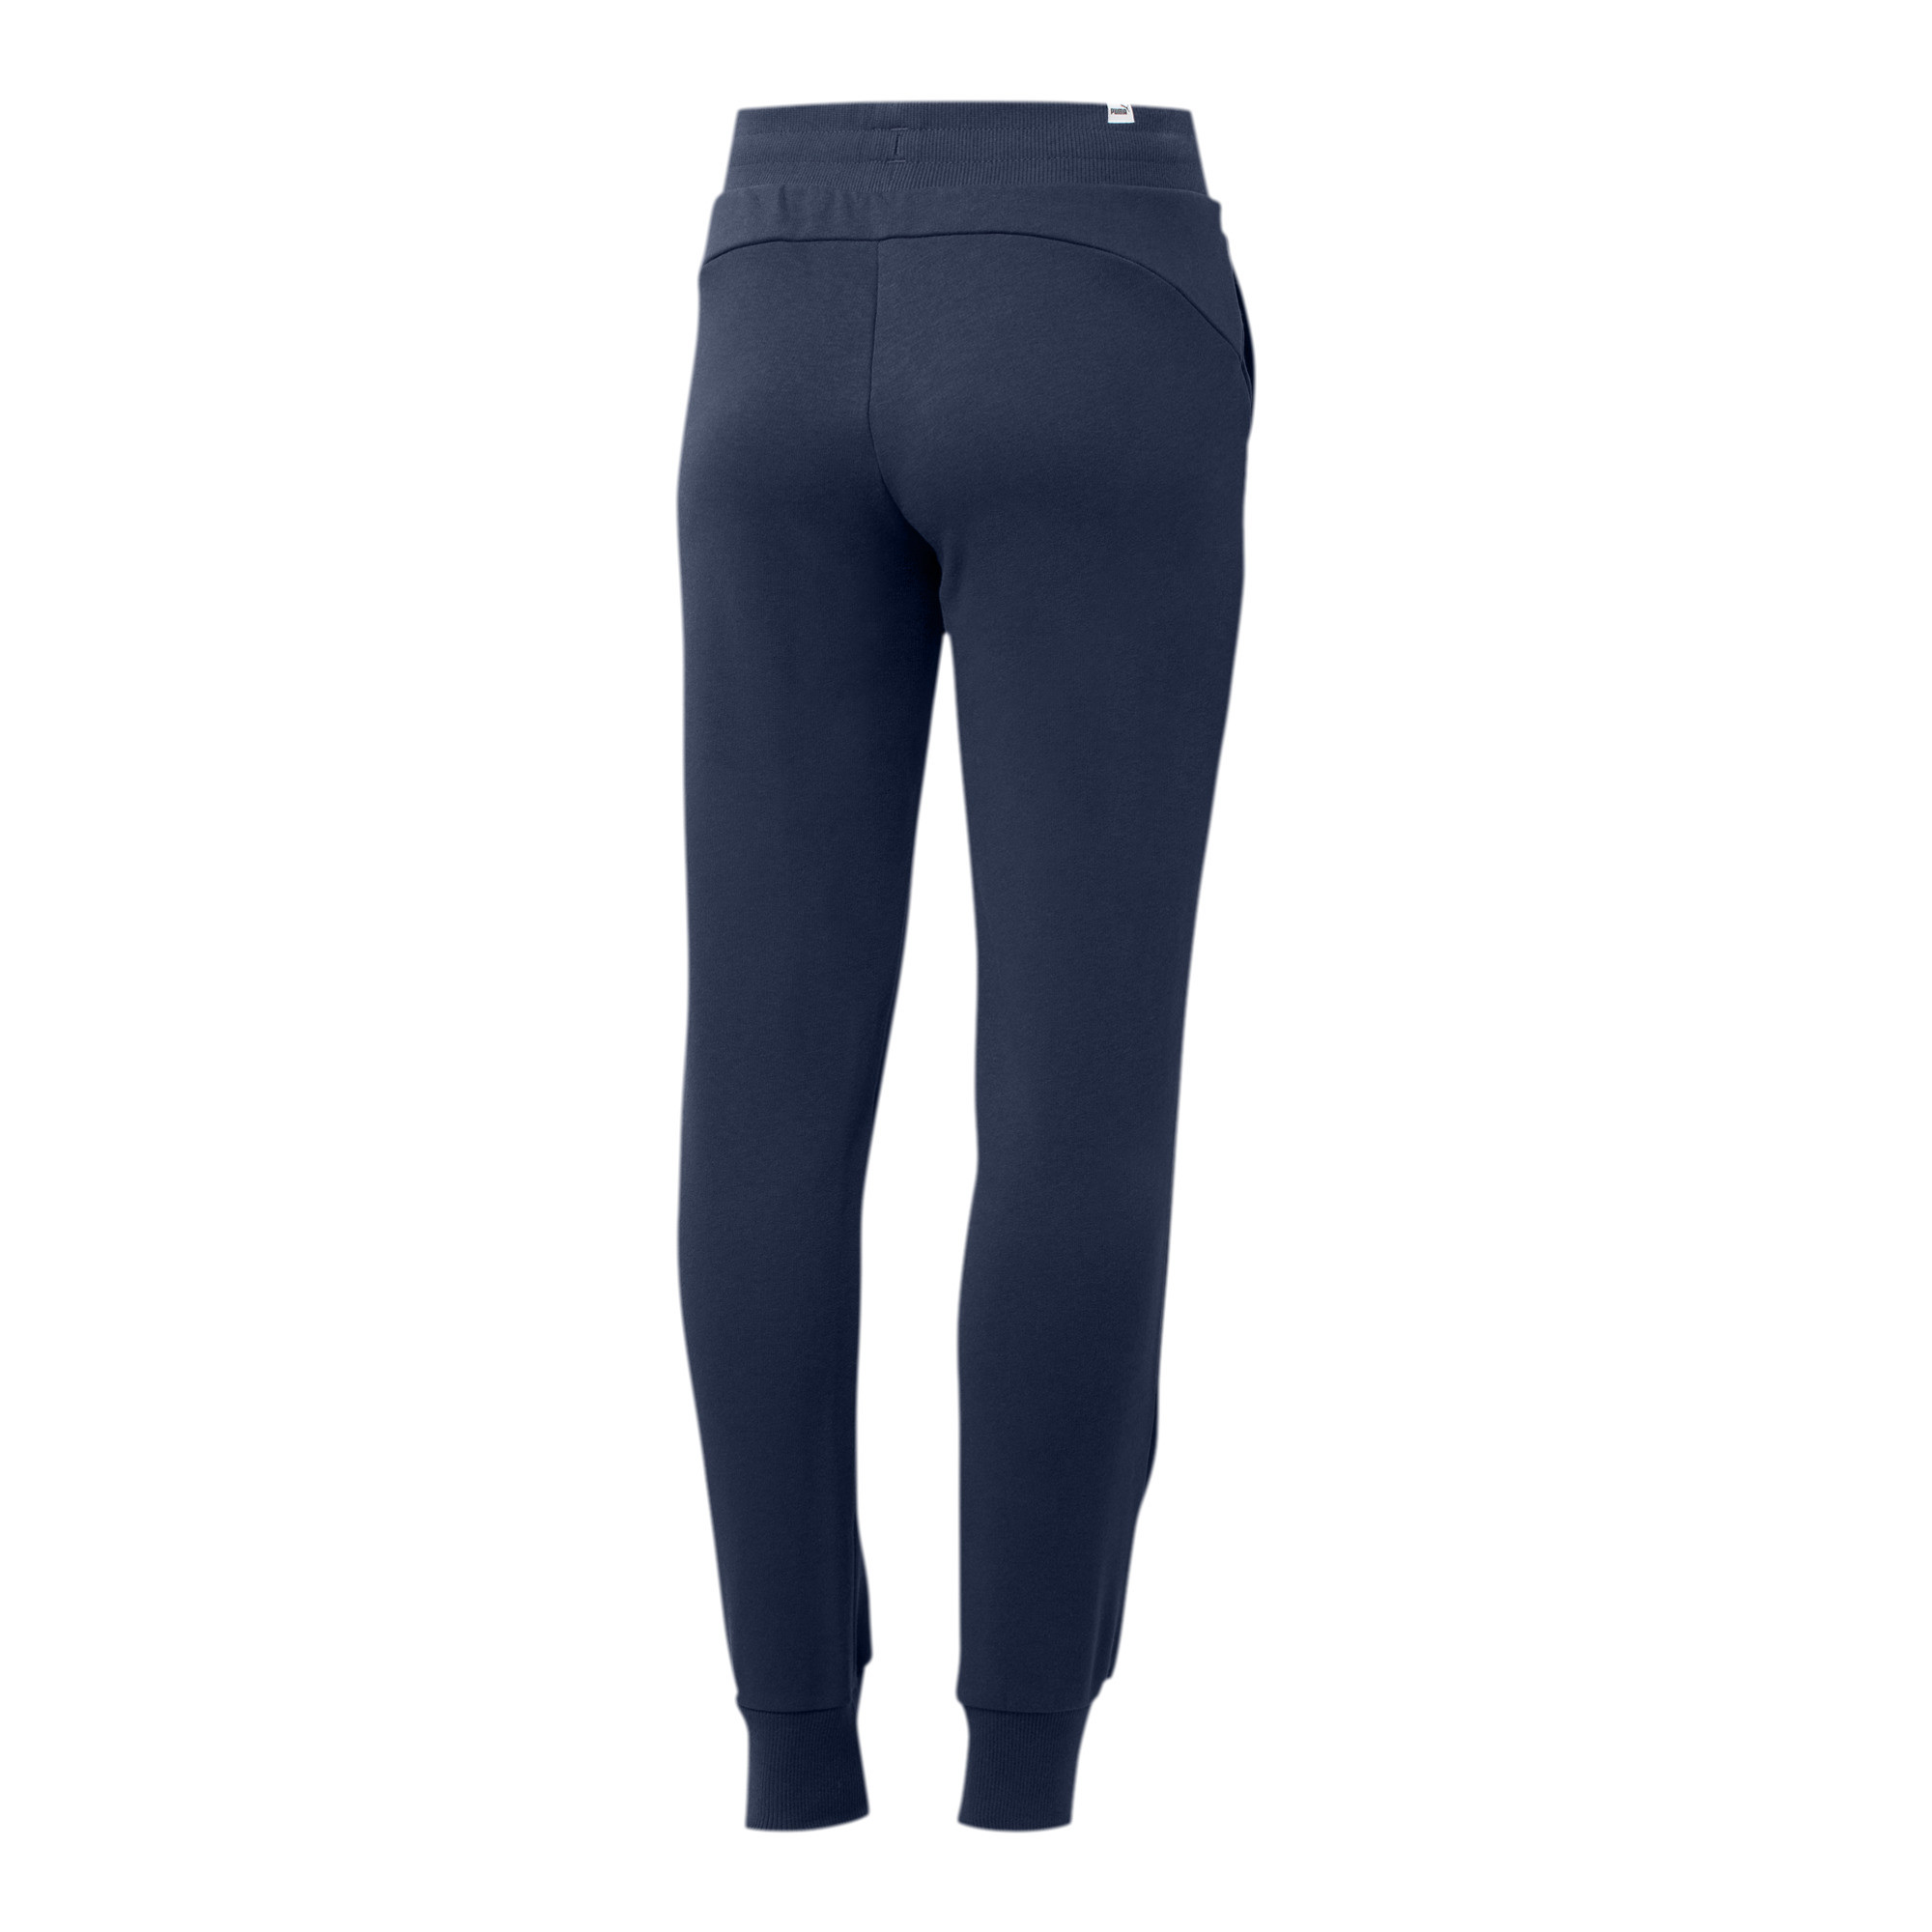 PUMA-Essentials-Women-039-s-Sweatpants-Women-Knitted-Pants-Basics thumbnail 9